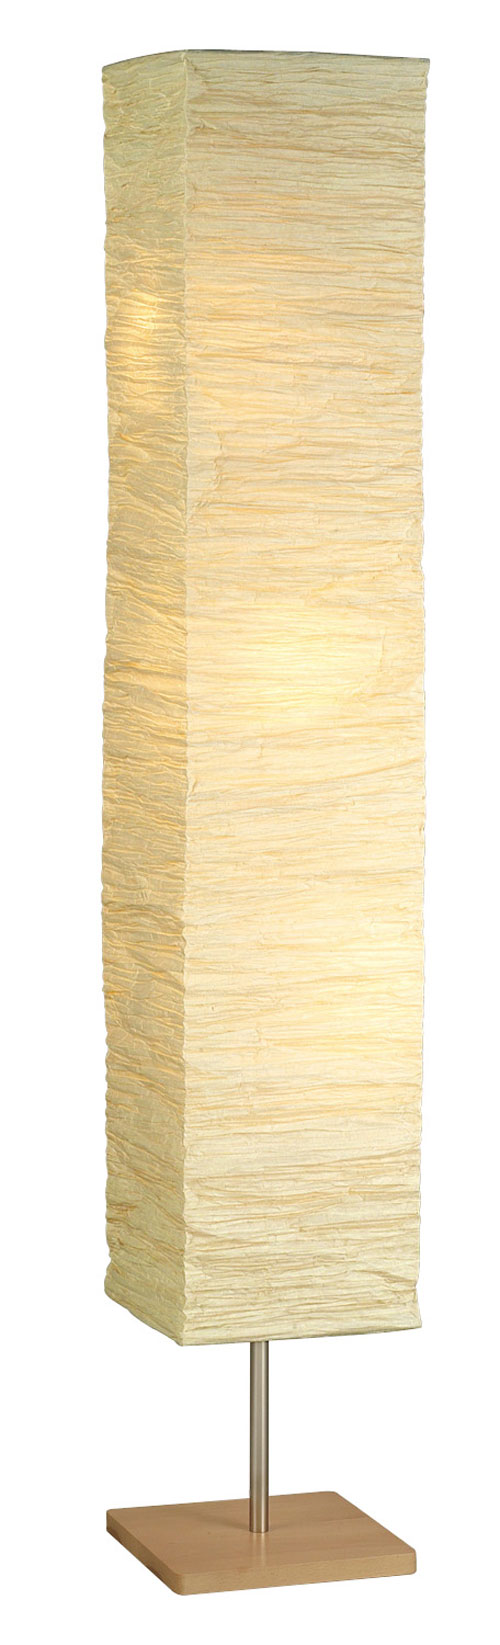 Adesso 8022 Dune Floorchiere - Natural 12